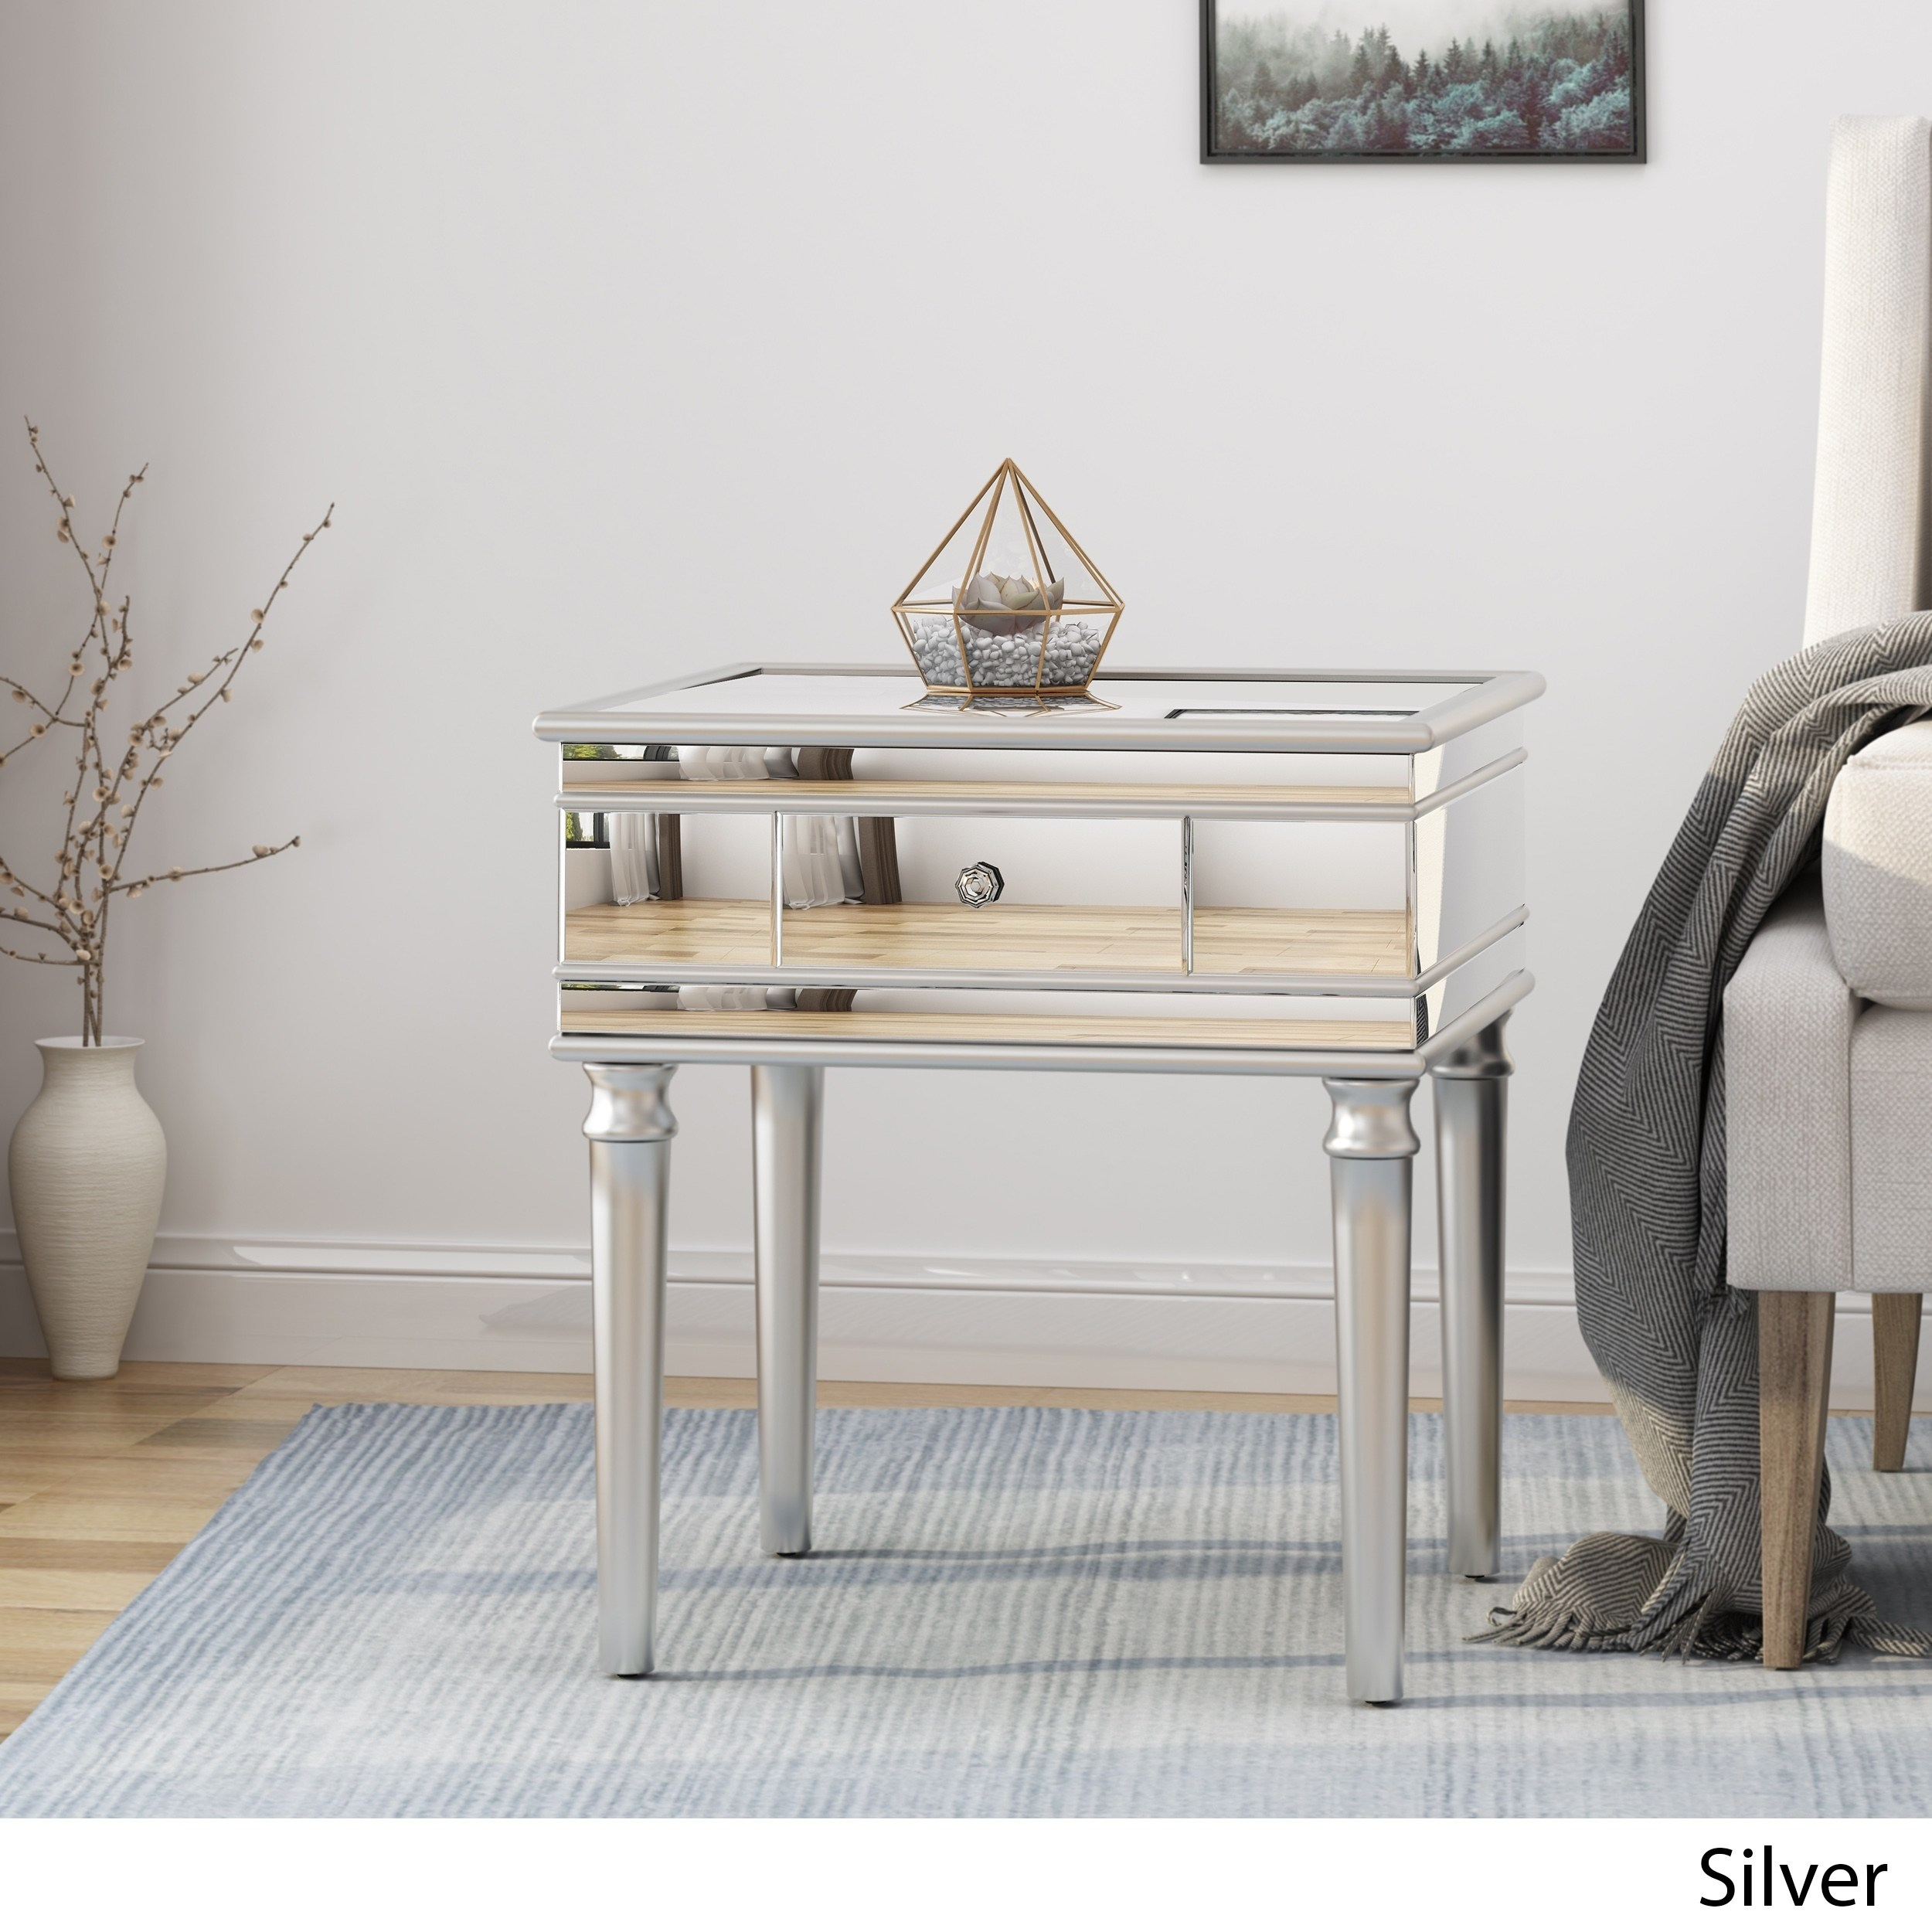 marinette modern tempered glass mirrored accent table with drawer christopher knight home silver gray free shipping today target small kitchen coastal decor lamps side legs seat